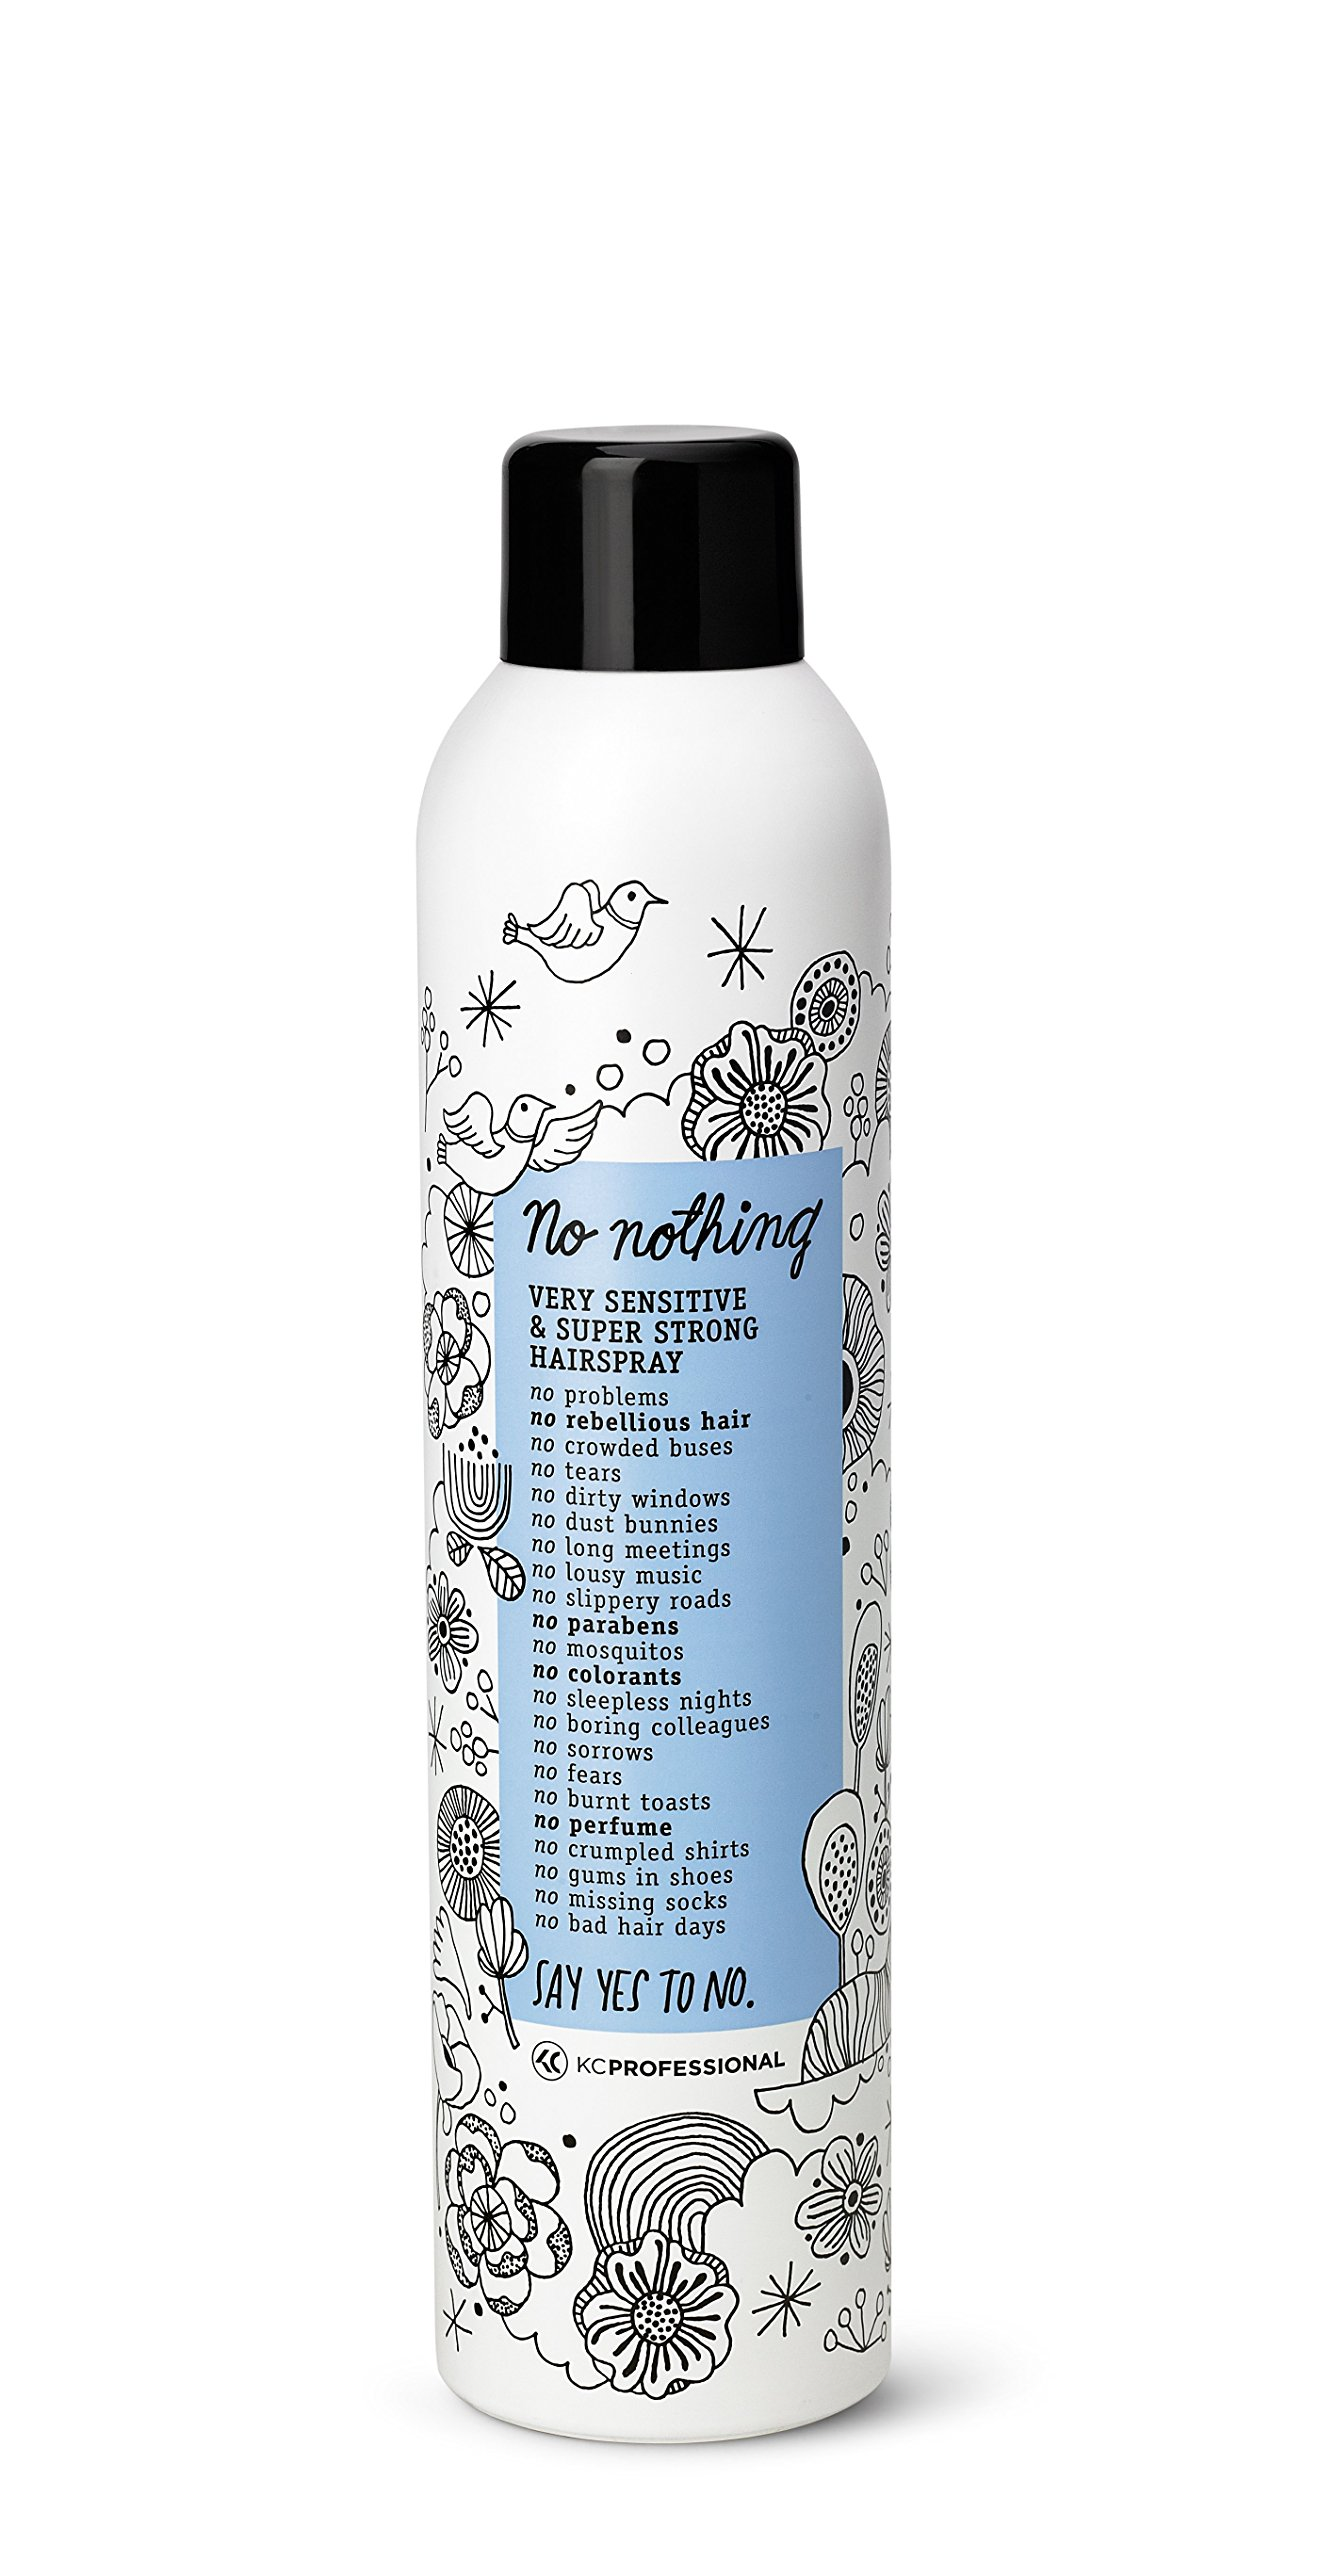 No nothing Very Sensitive Super Strong Hairspray - Fragrance Free Extra Strong Styling and Finishing Spray